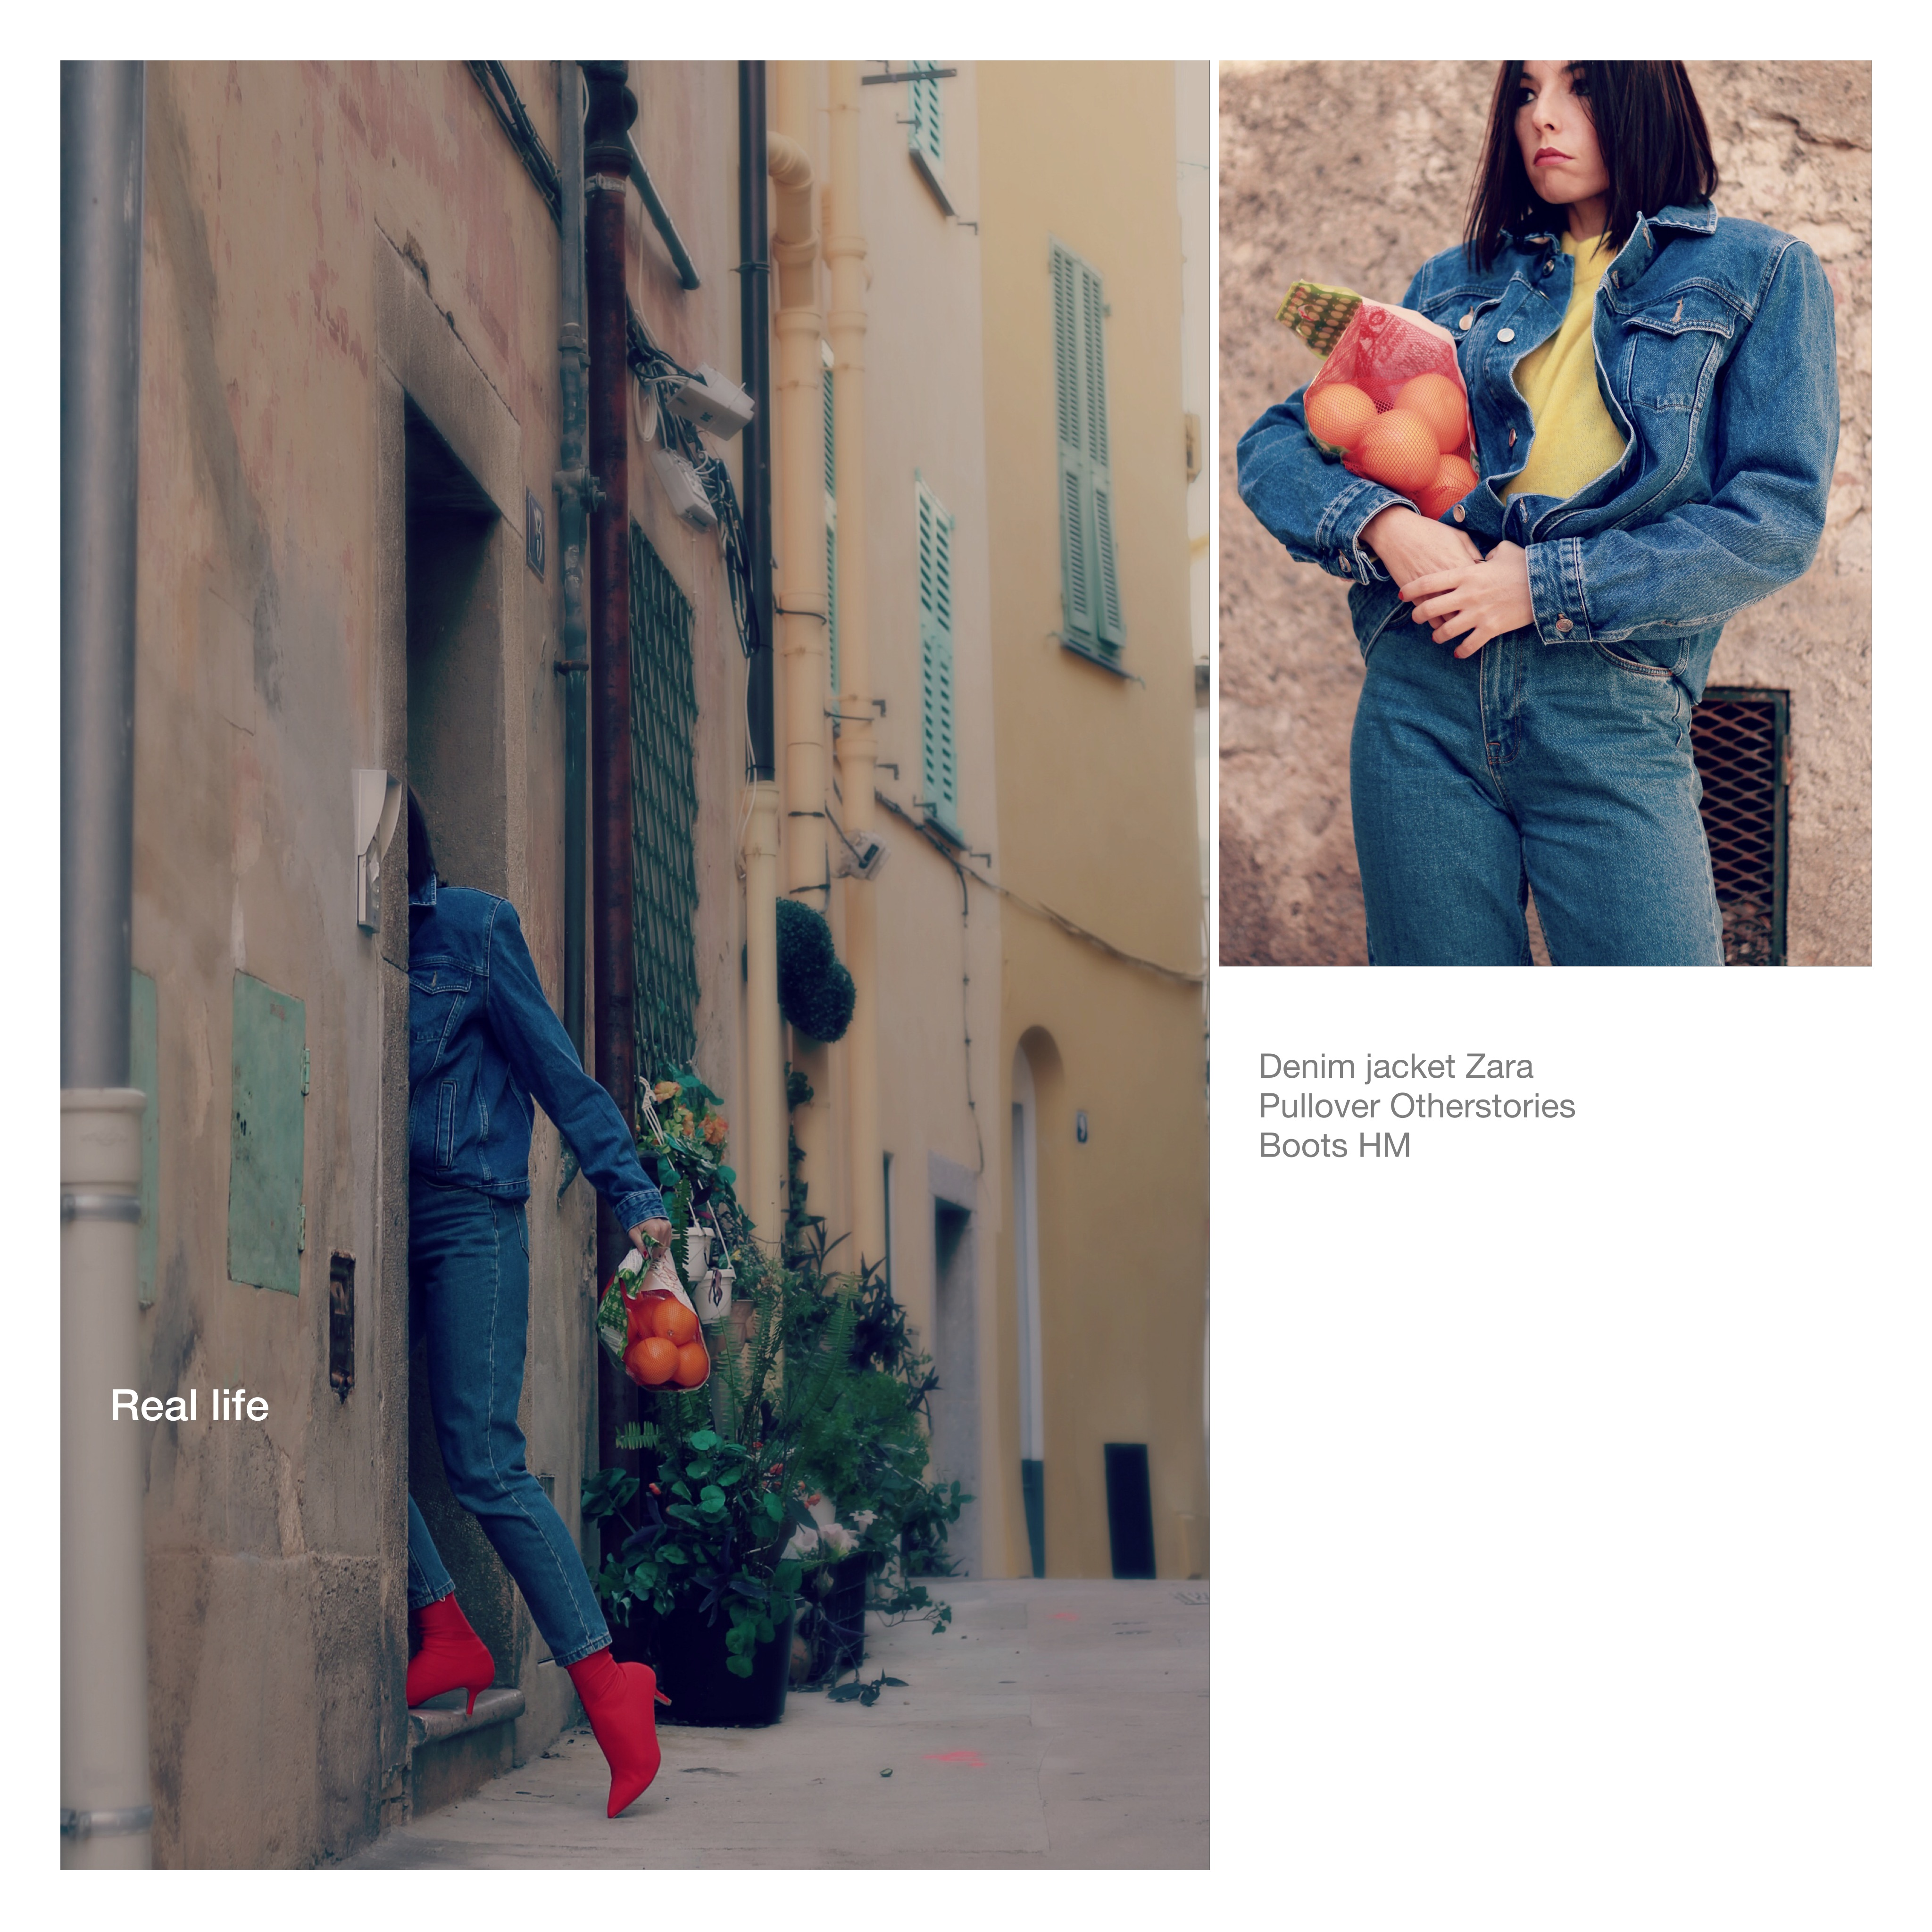 la moda oggi, theladycracy.it, fashion blogger milano 2018, fashion blogger famose 2018, fashion blogger più seguite 2018, blogger moda 2018, blogger moda più seguite instagram 2018, elisa bellino, giacca denim zara, stivali calza hm, maglione otherstories, come vestirsi inverno oggi, come vestirsi casual chic inverno, perché la moda è brutta, perché il brutto piace nella moda, il brutto nella moda, stile anni 80 outfit moda